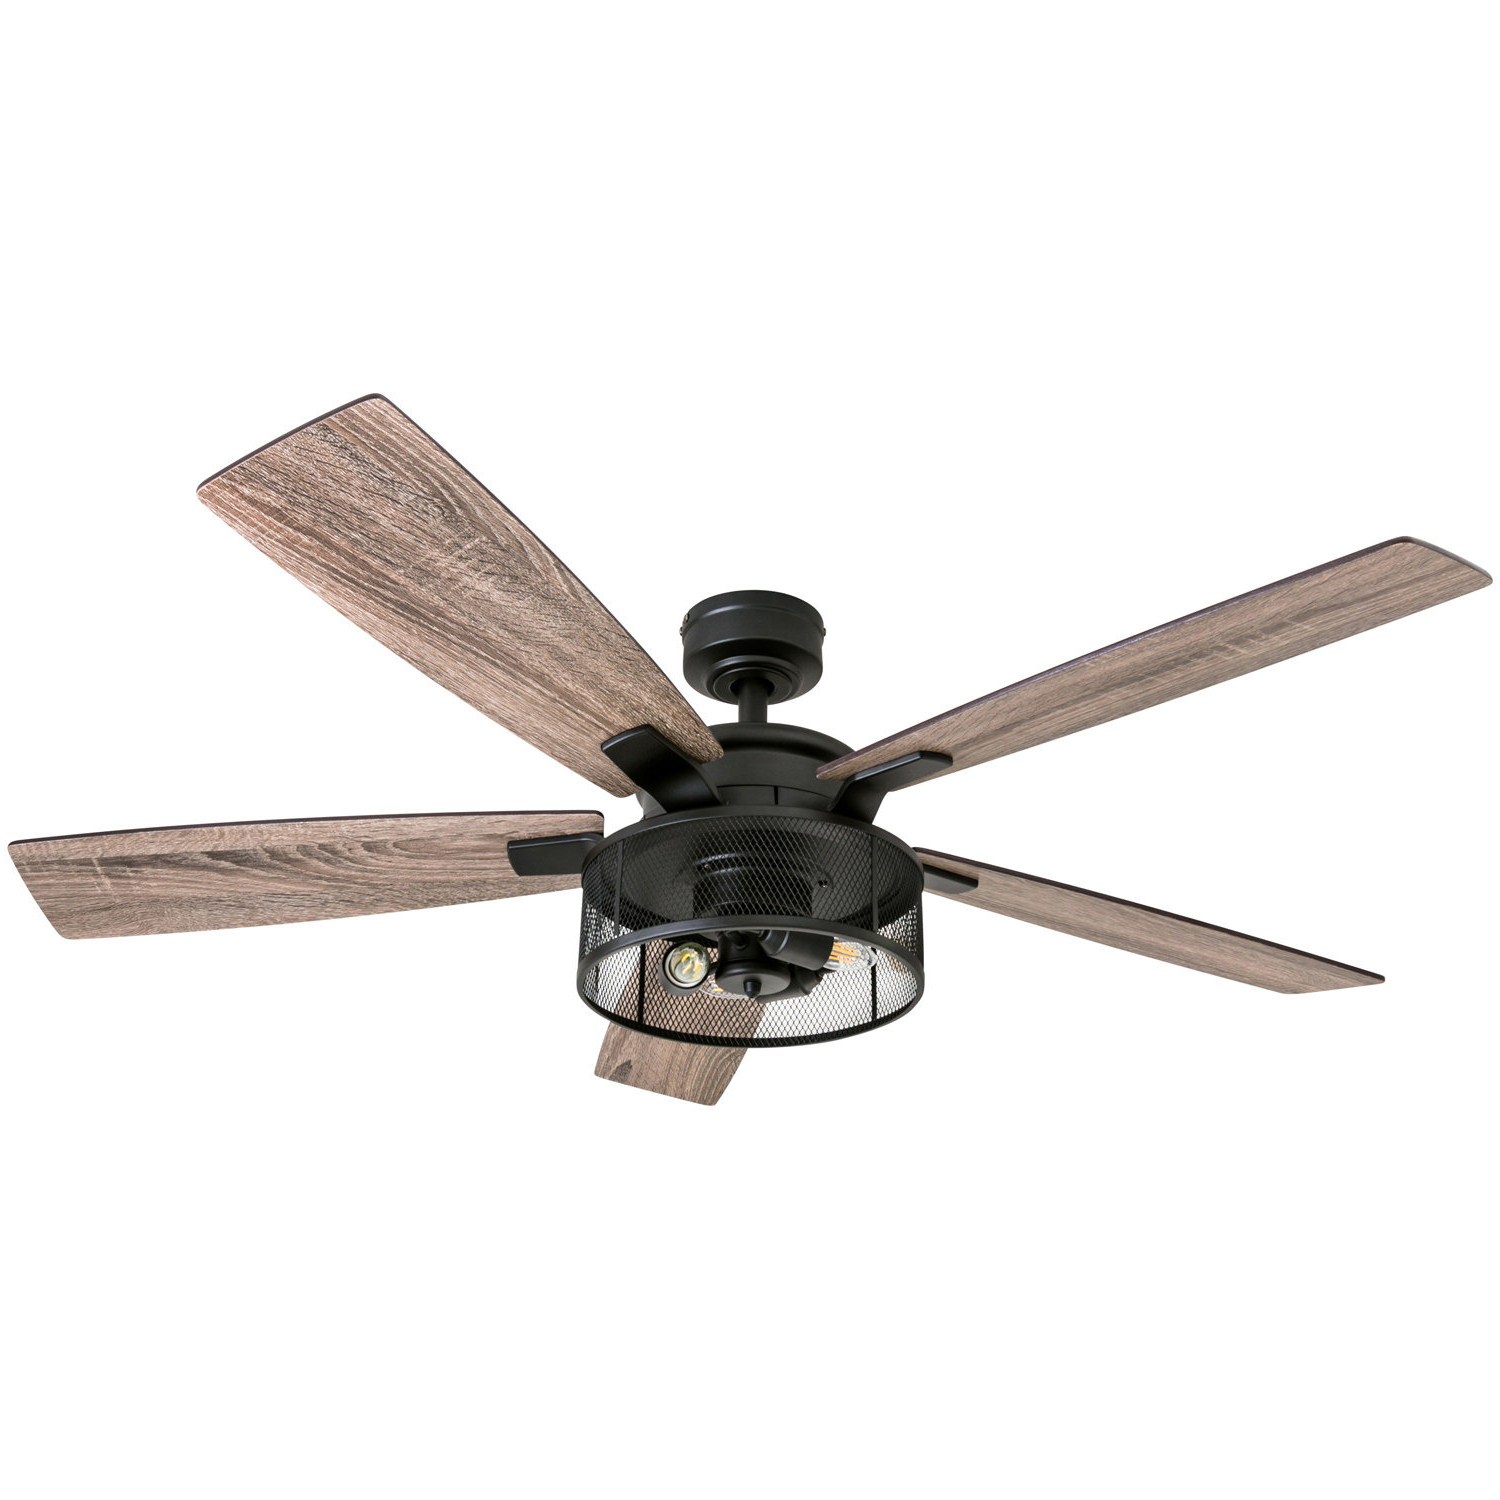 "The Kensington 5 Blade Ceiling Fans Throughout Well Known 52"" Divisadero 5 Blades Led Ceiling Fan Led Light Kit Included (View 7 of 20)"